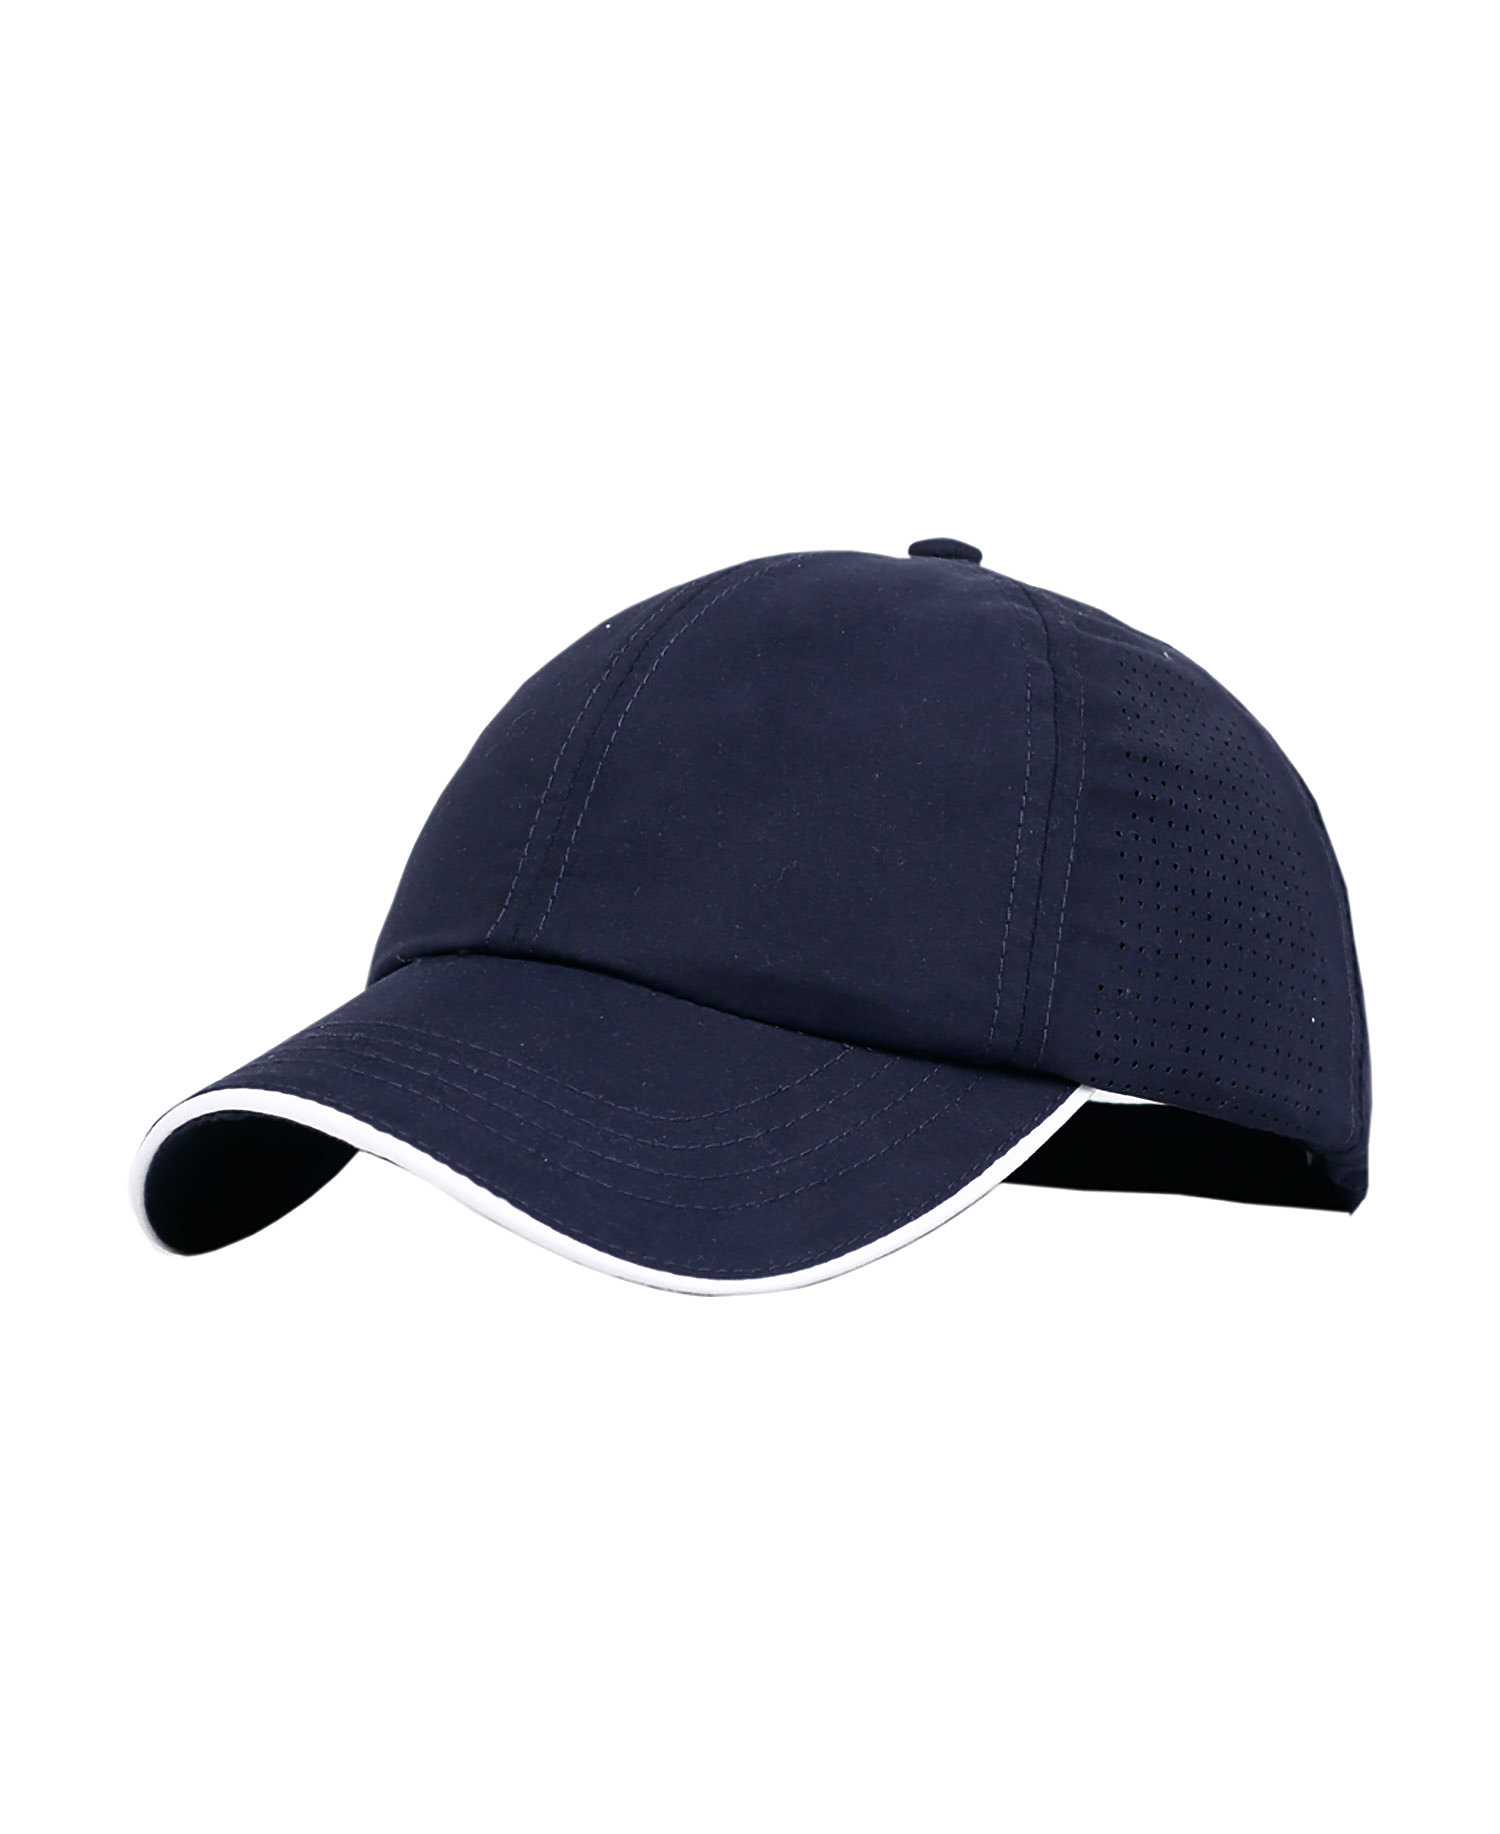 Fahrenheit F0773 - Mircofiber Performance Fabric Cap